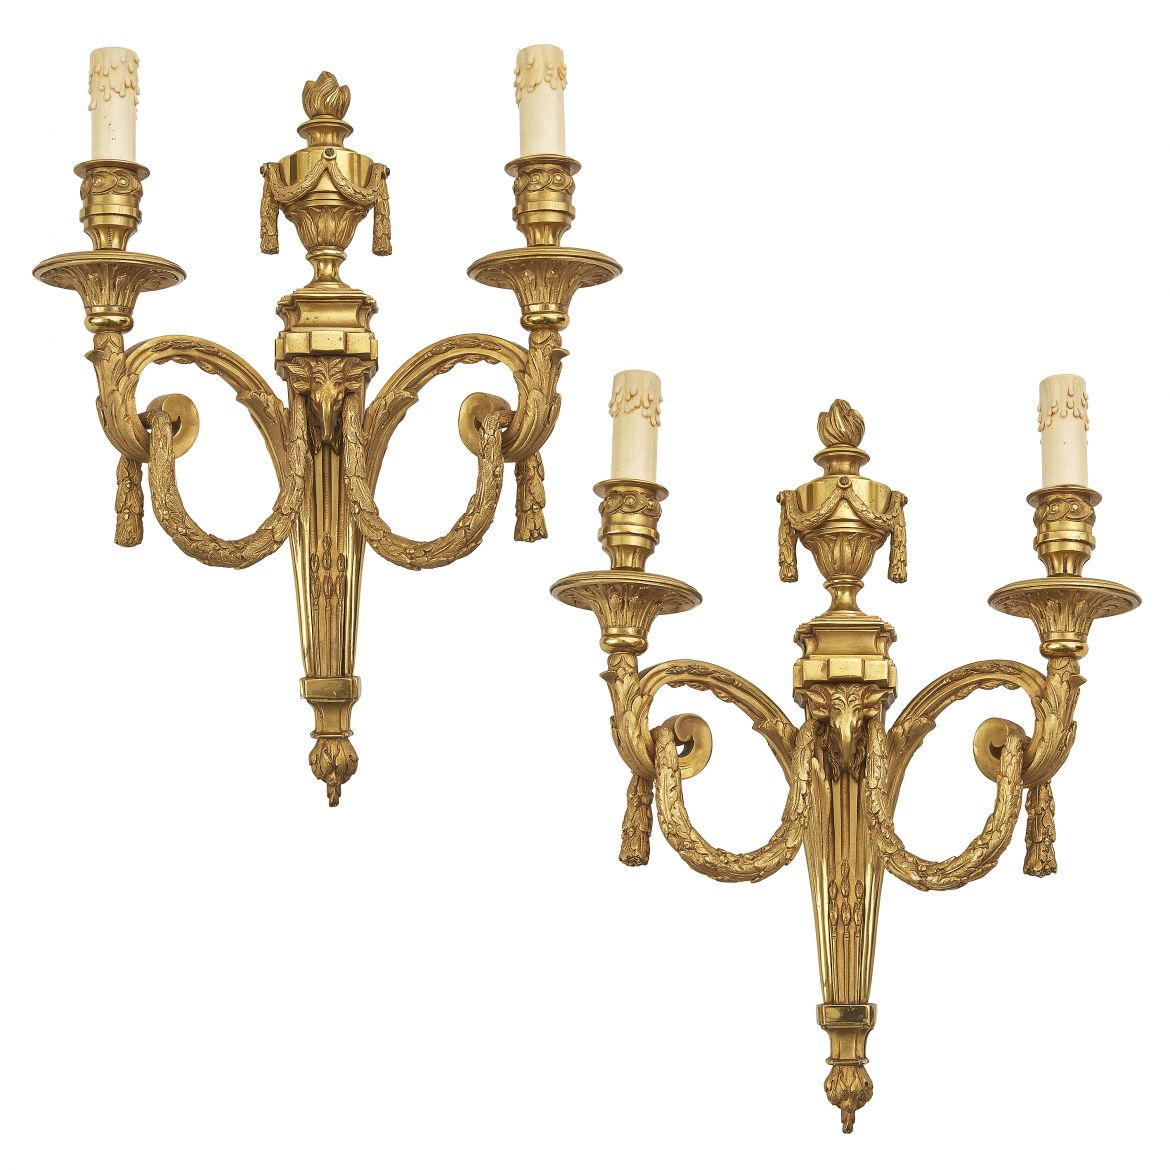 Pair Louis XVI Style Neoclassical Wall Sconces After Model By Delafosse